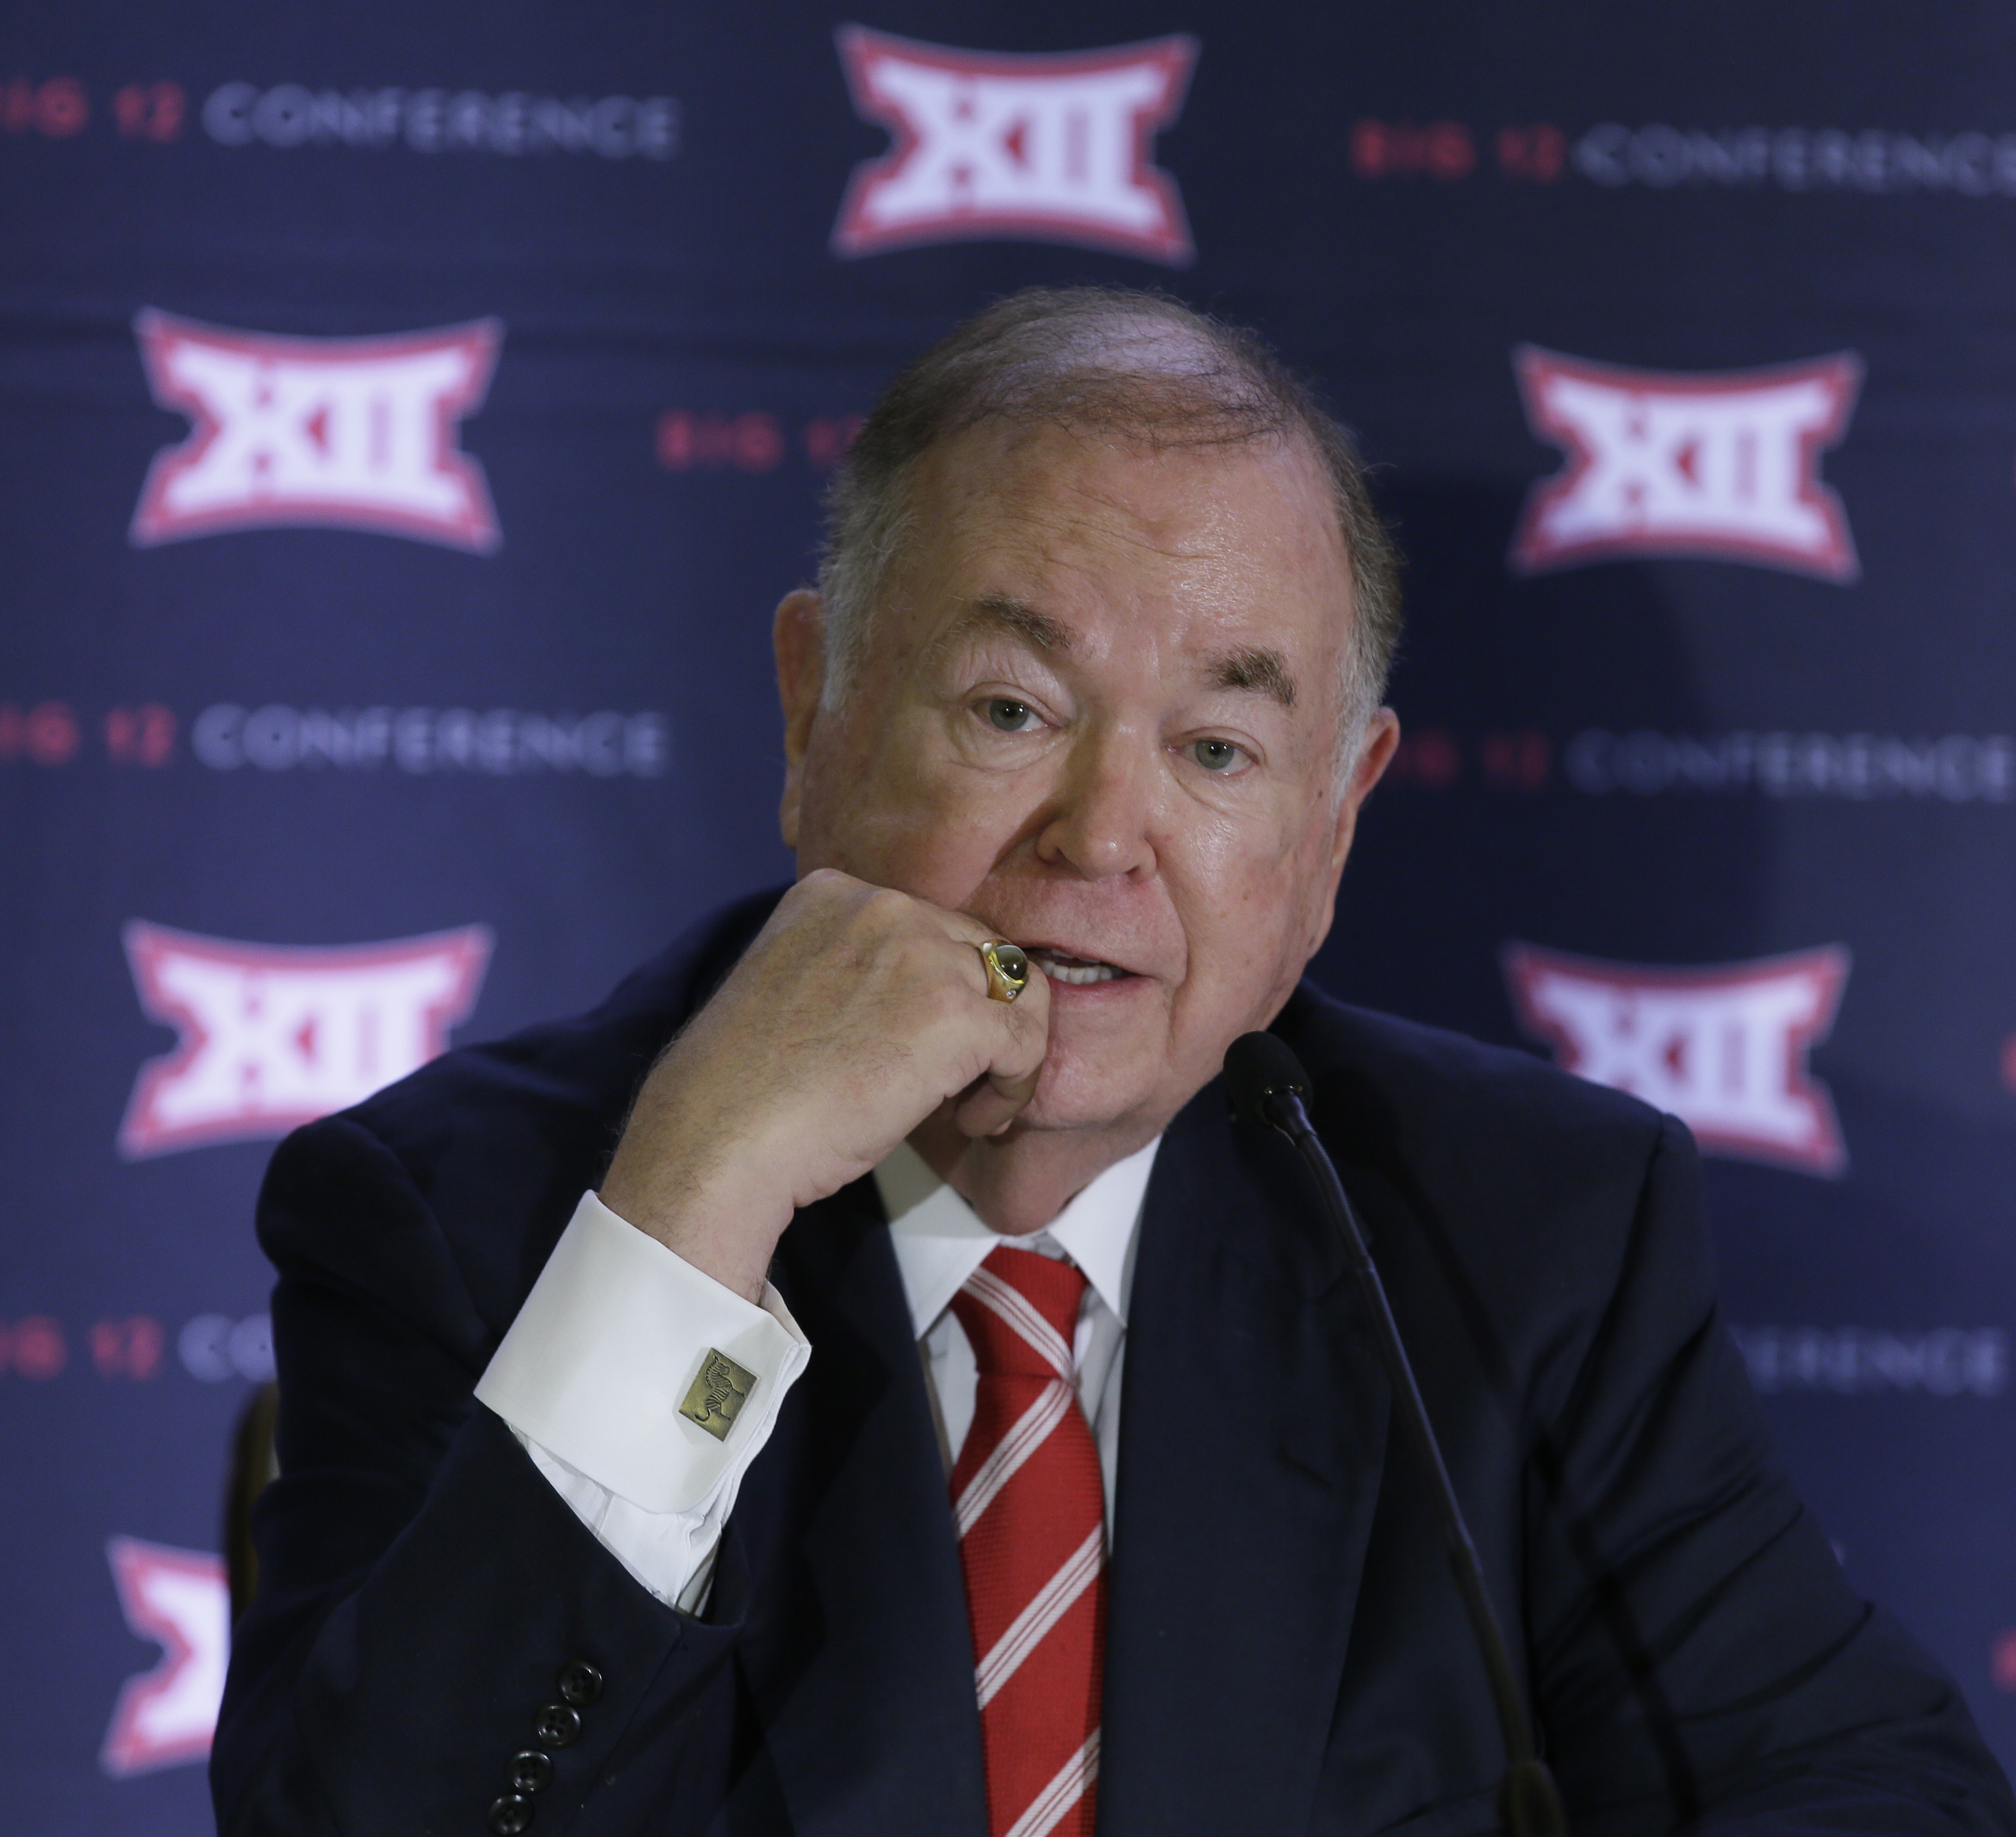 FILE - In this June 2, 2016, file photo, University of Oklahoma President David Boren speak to reporters after the second day of the Big 12 sports conference meetings in Irving, Texas. The Big 12 board of directors meets Monday, Oct. 17, 2016, in Dallas a